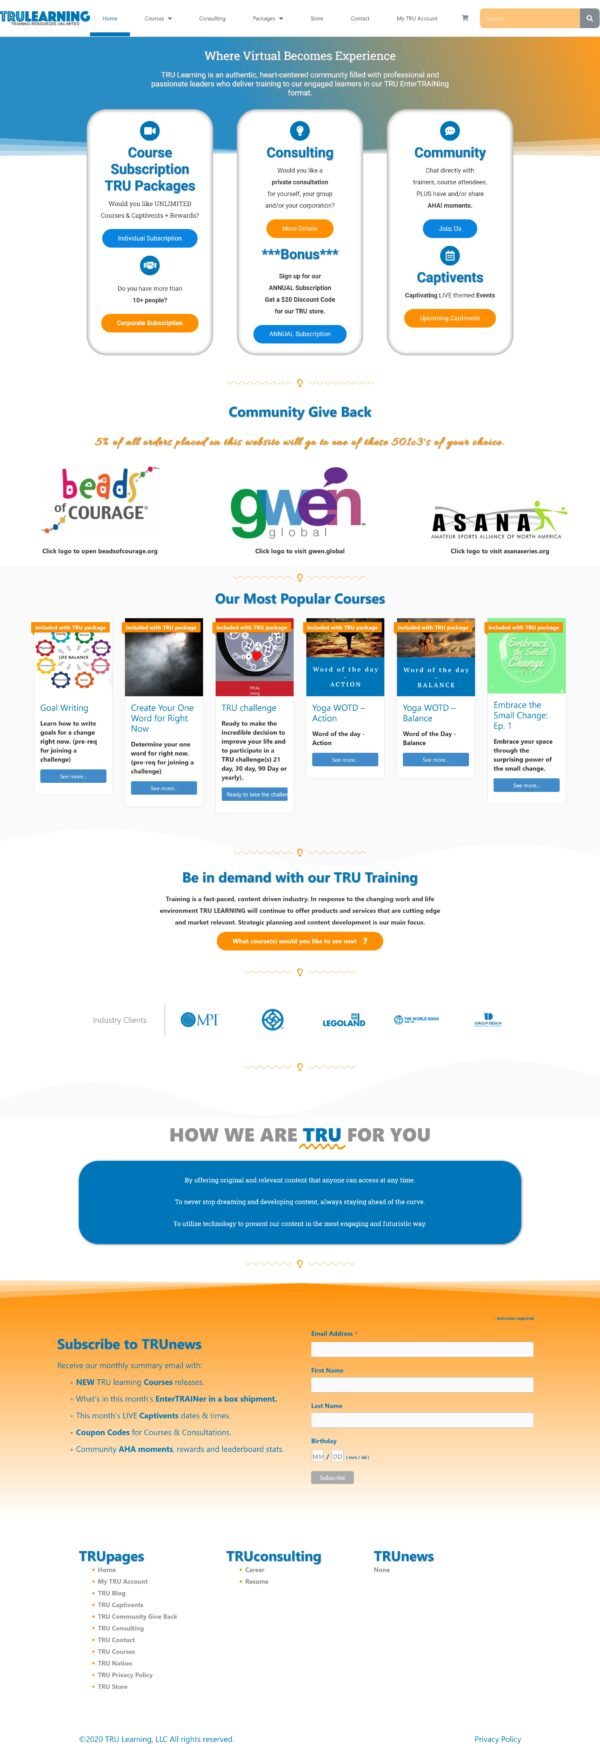 mytrulearning.com